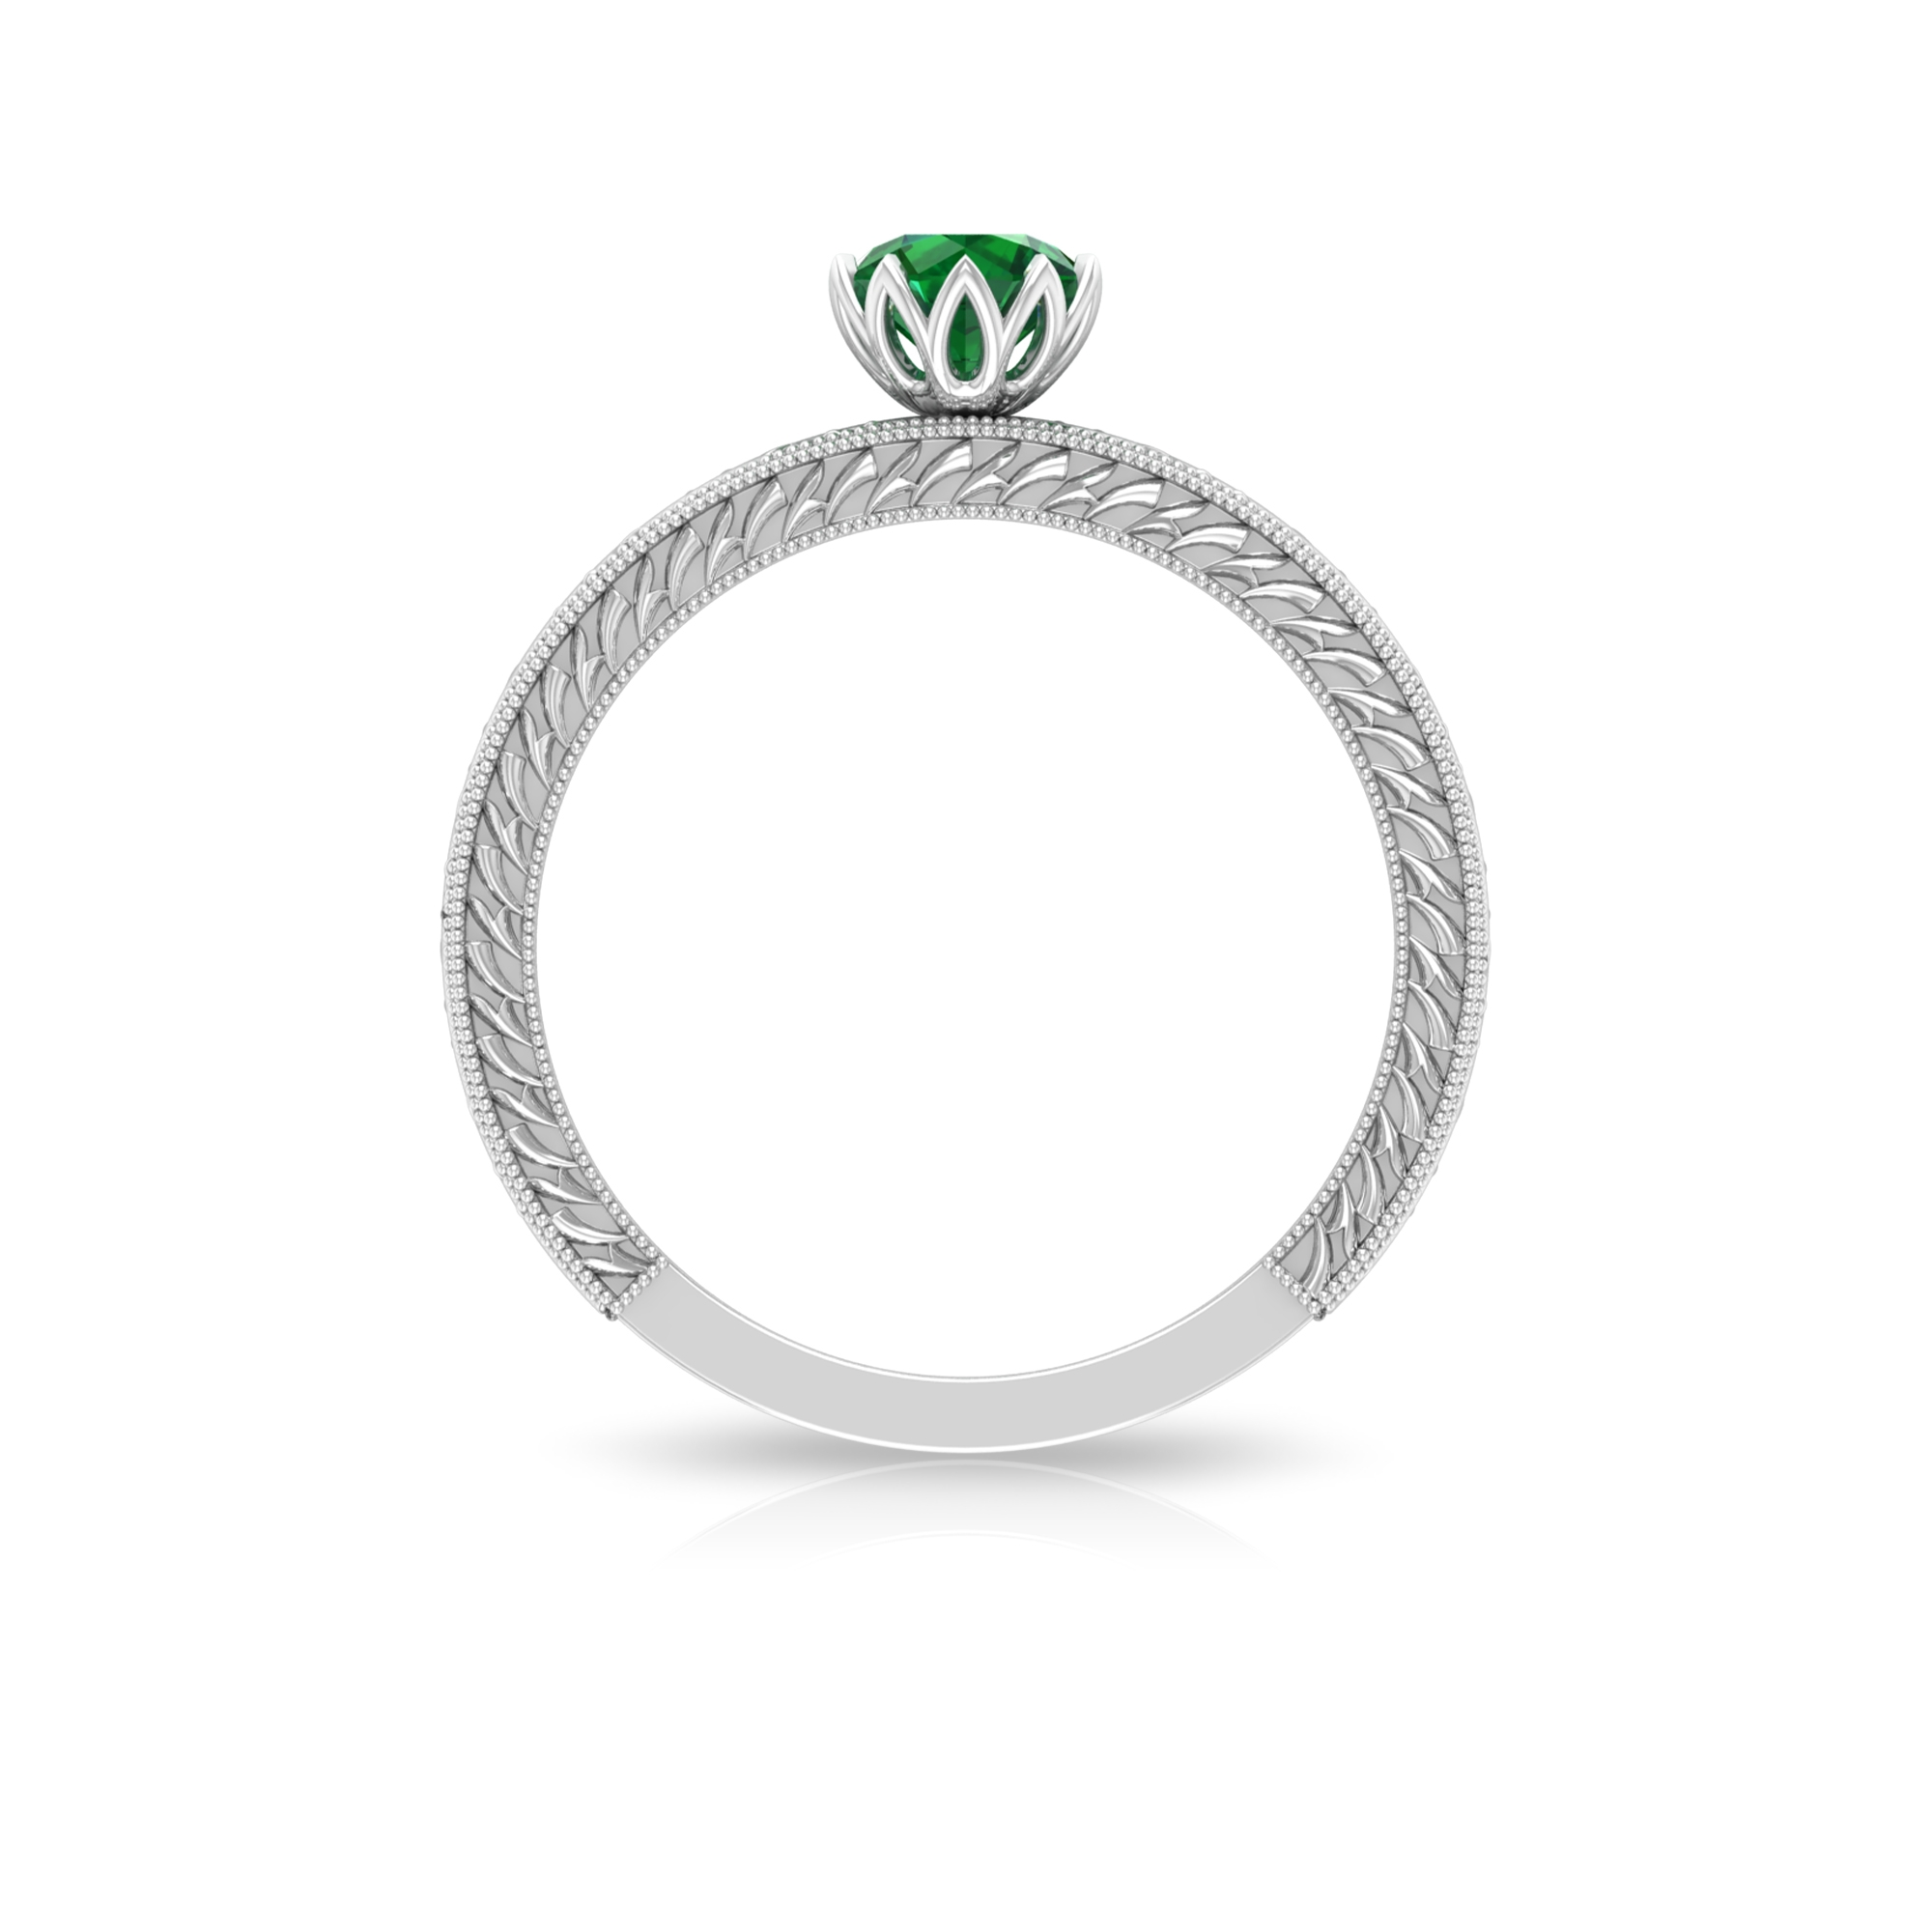 5 MM Round Cut Emerald Solitaire and Gold Engraved Ring in Lotus Basket Setting